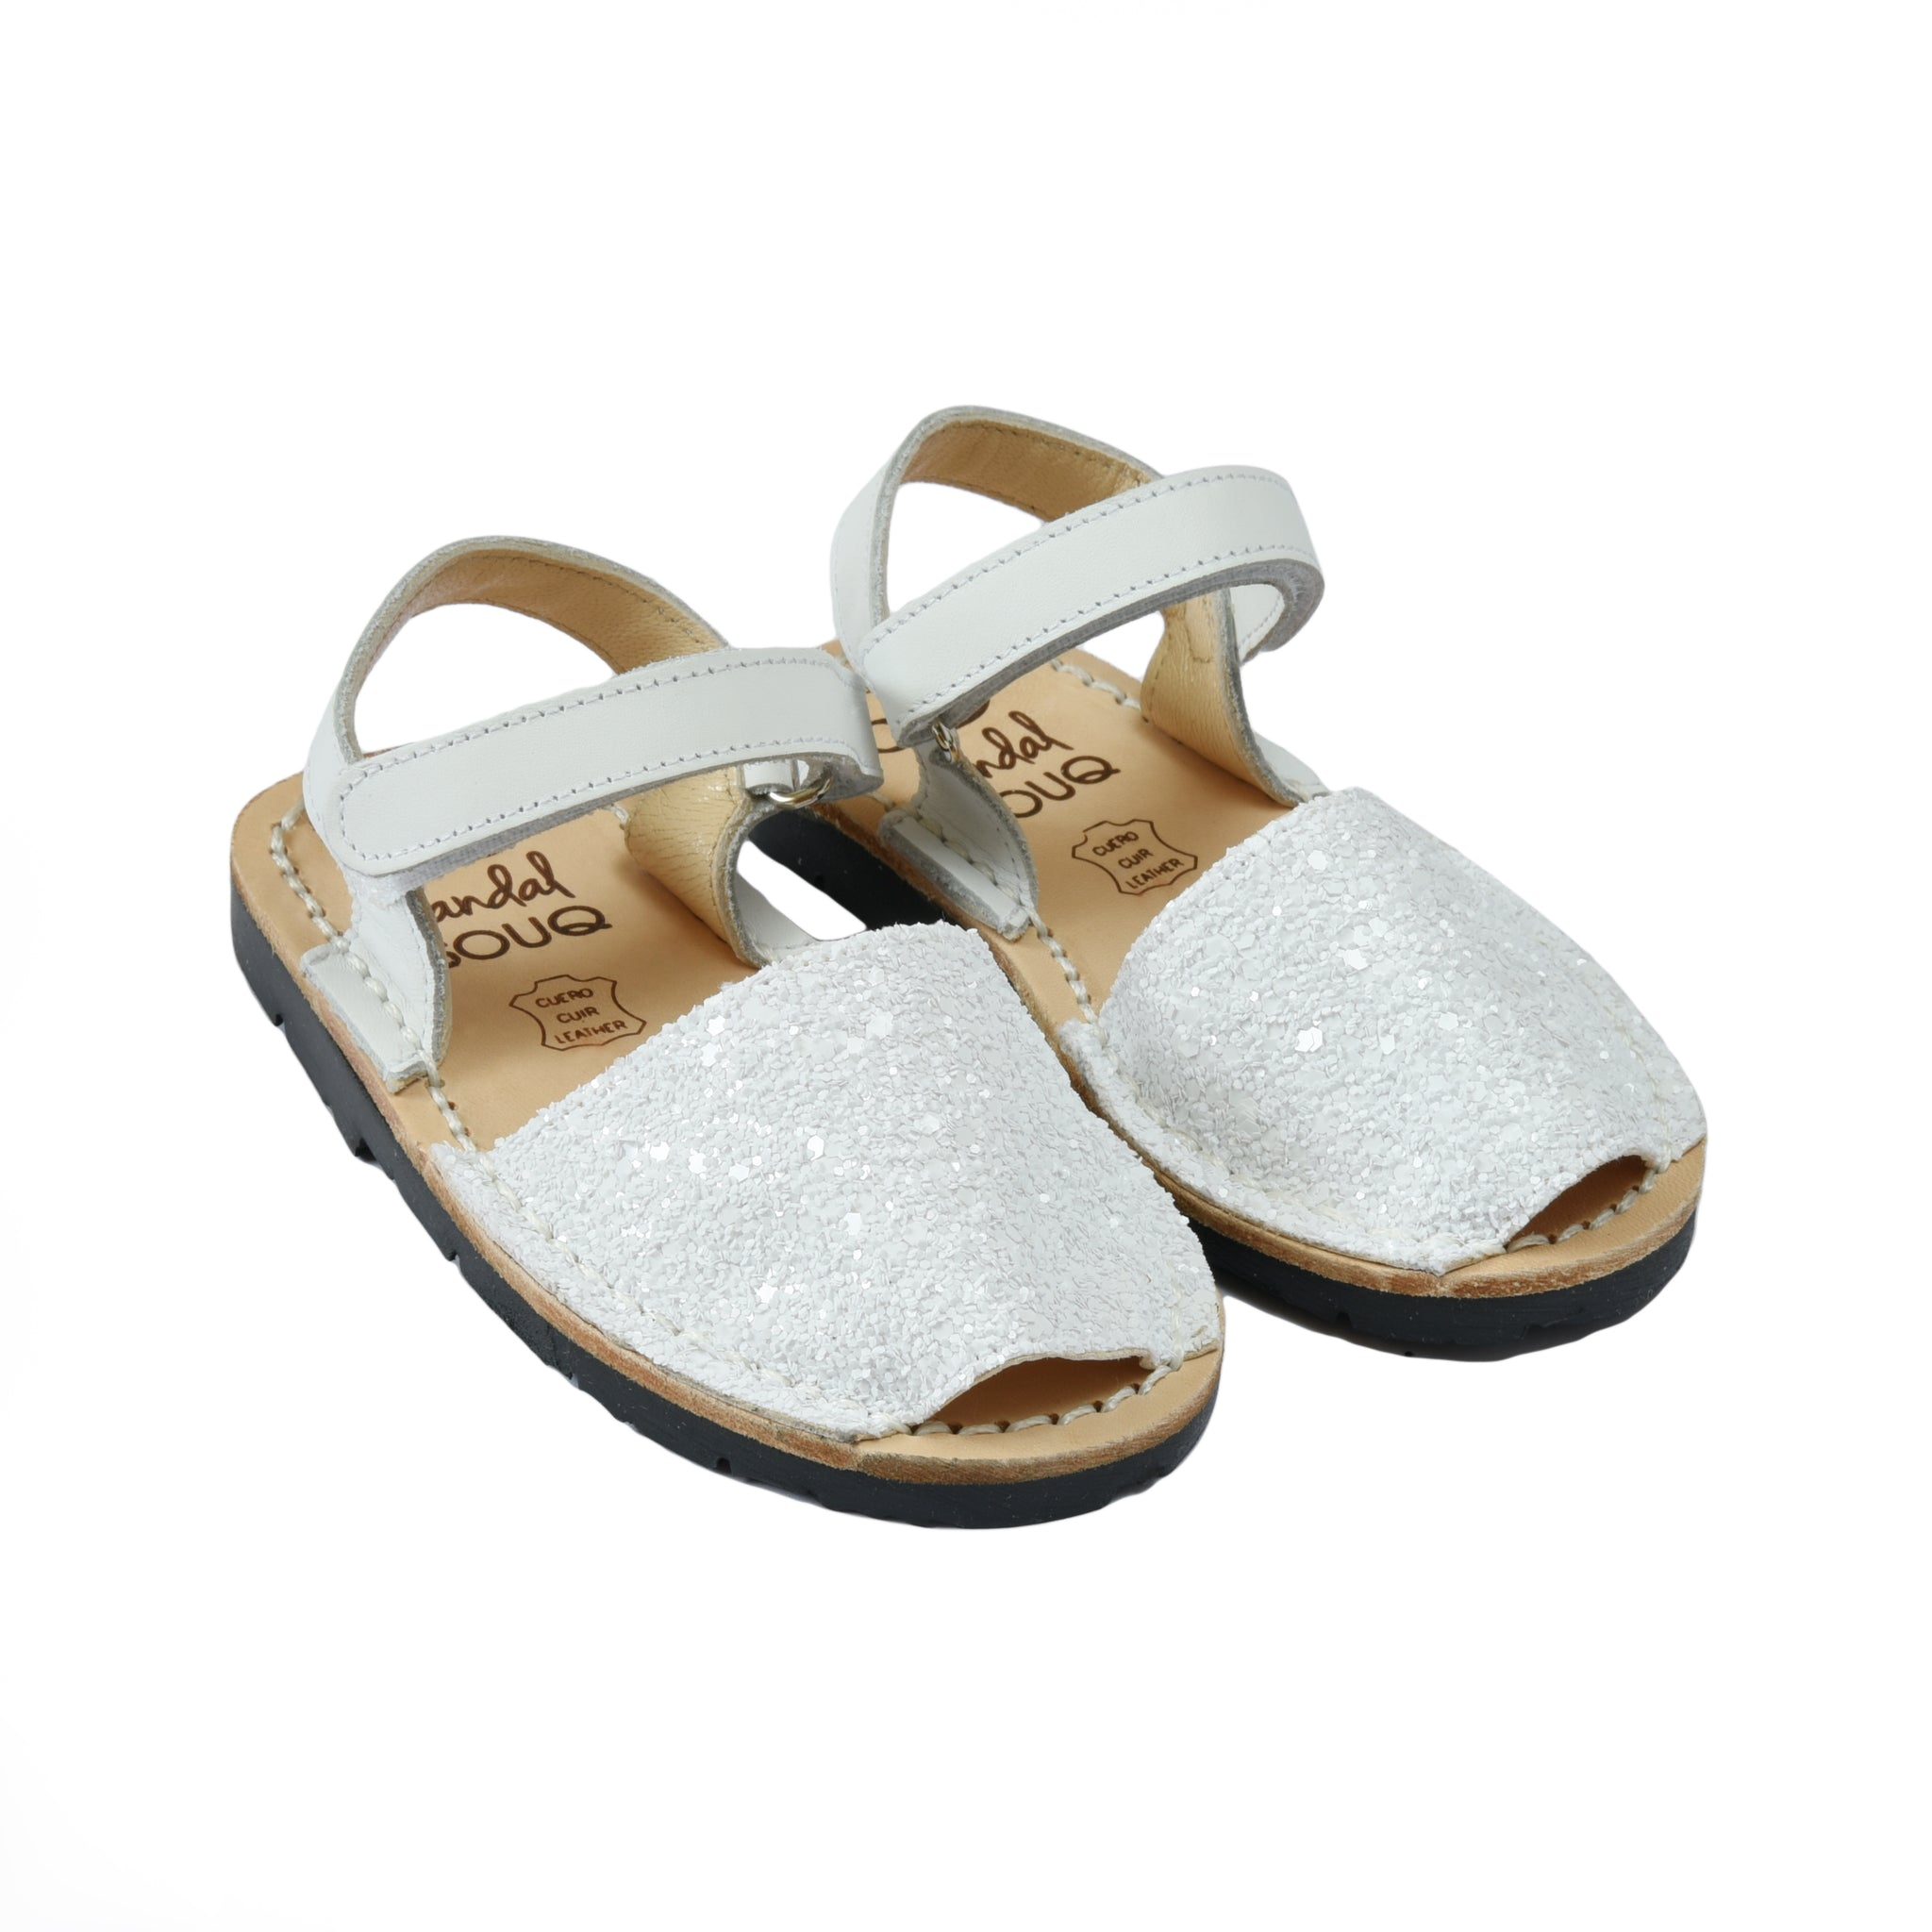 Kid's White Glitter Mibo Avarca Sandals with Velcro Strap